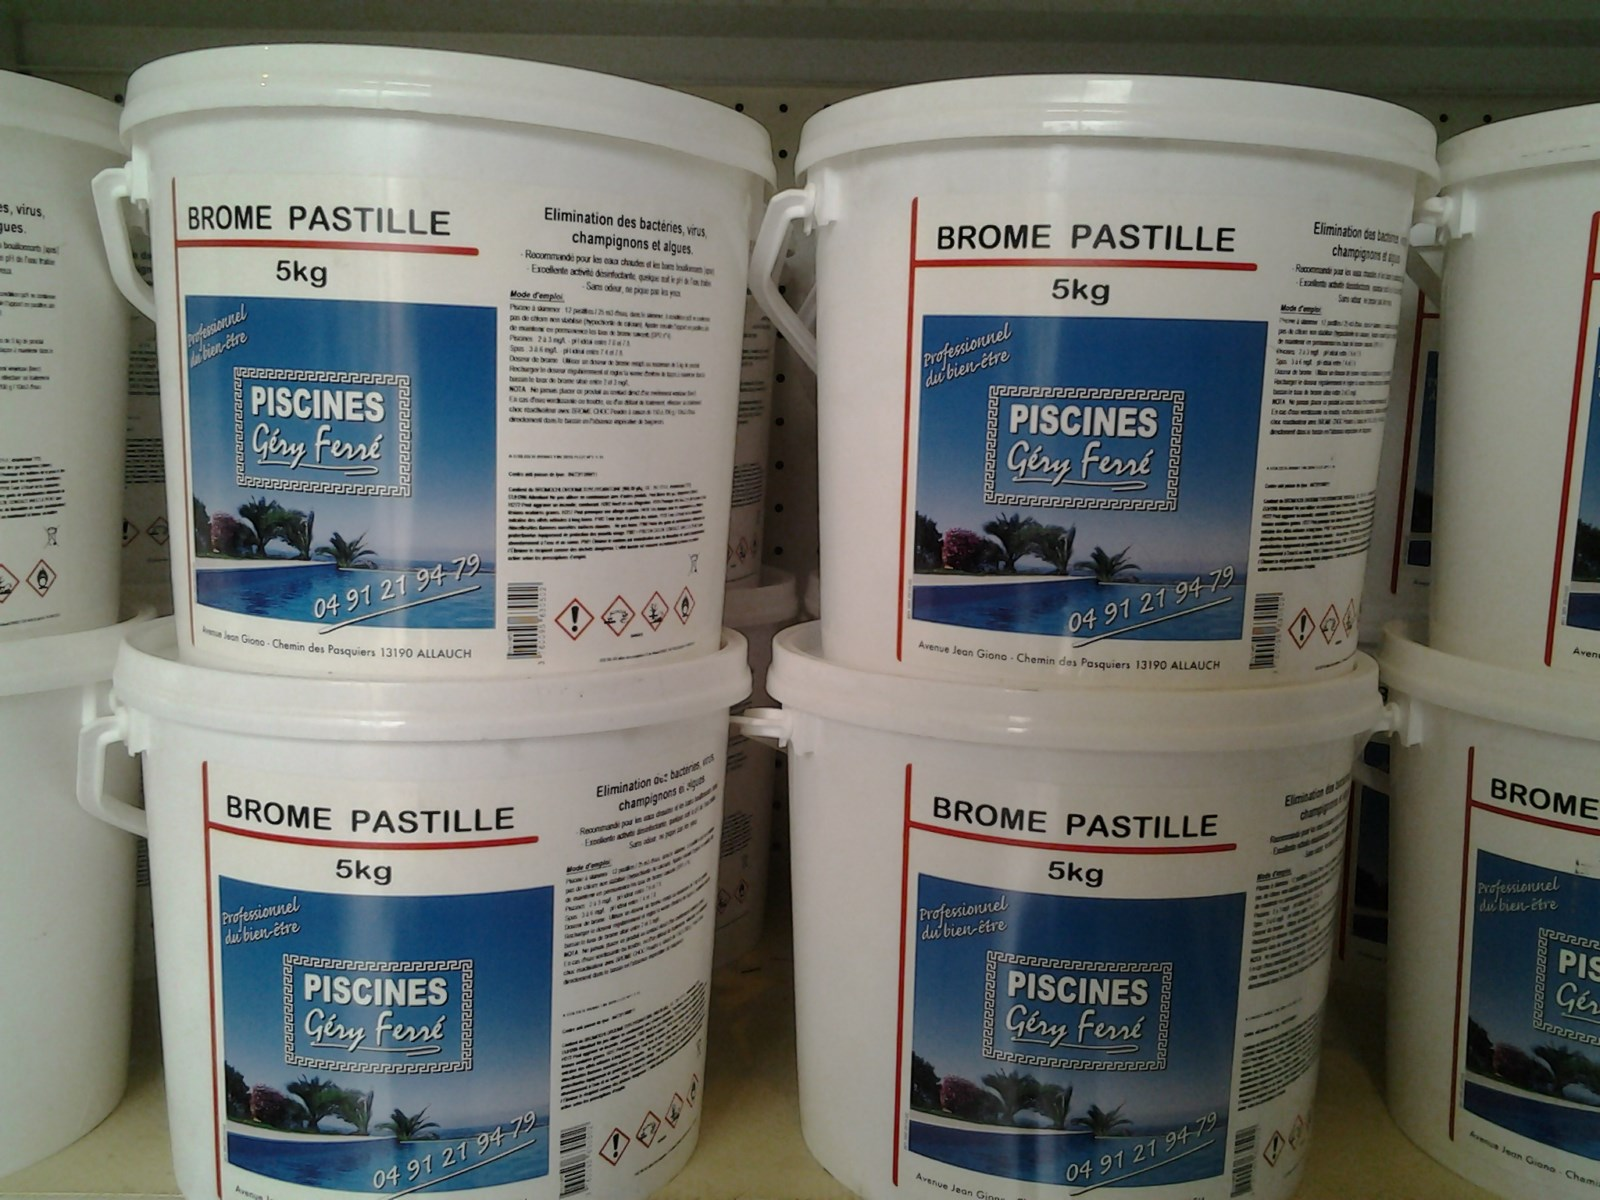 Brome lent pastilles 20g ferr piscines 5kg le magasin for Piscine brome cancer